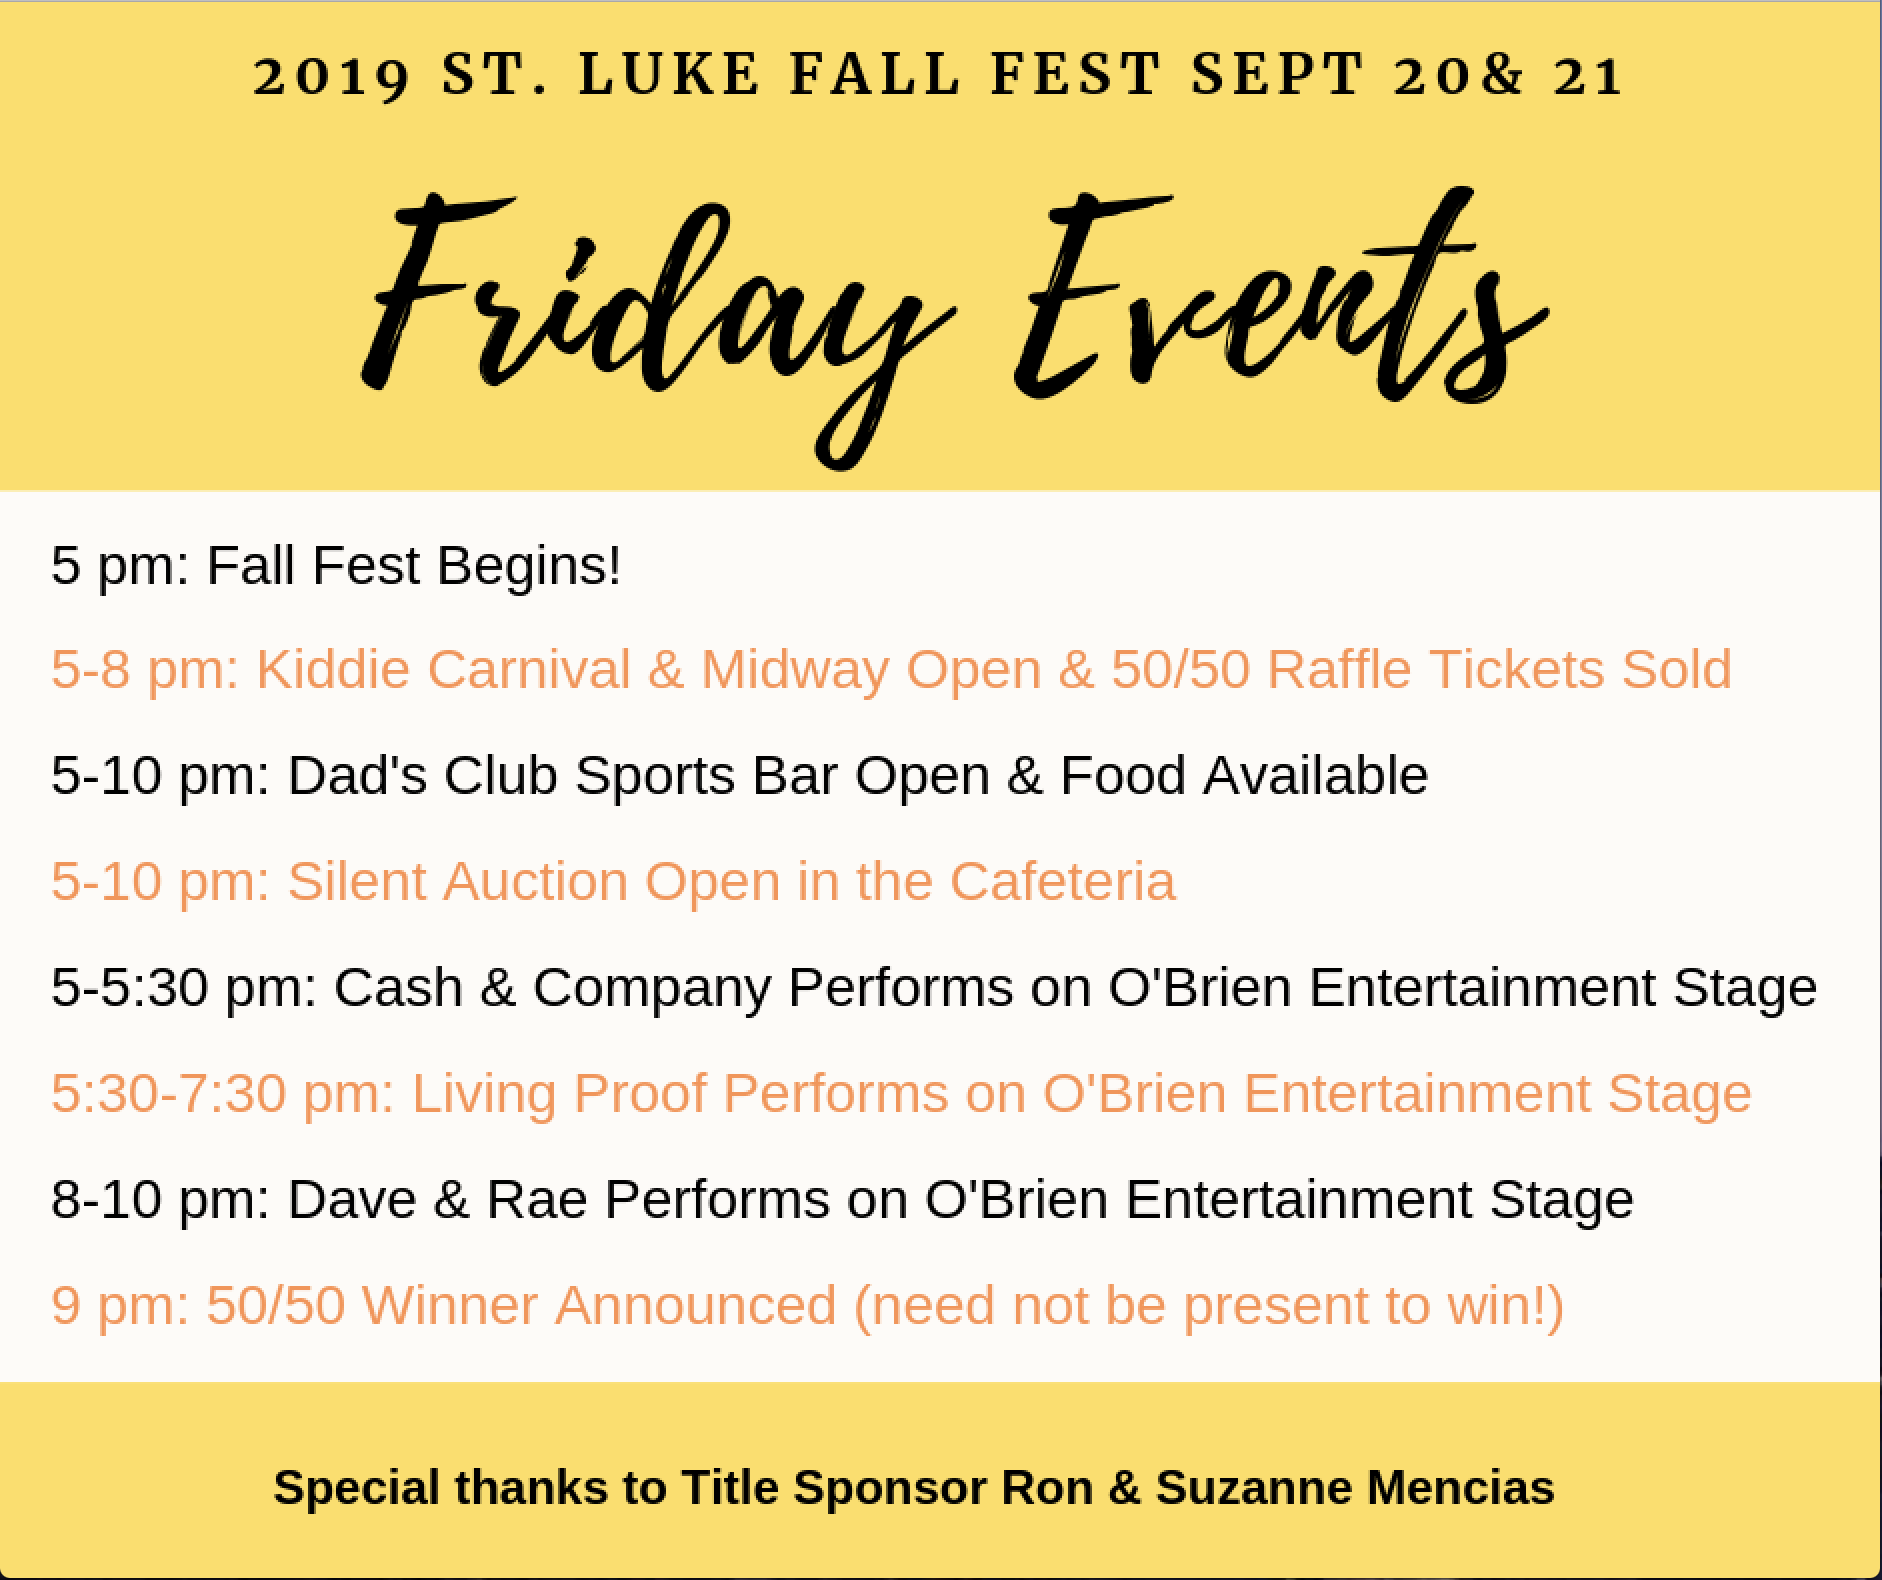 Fall Fest Friday Schedule